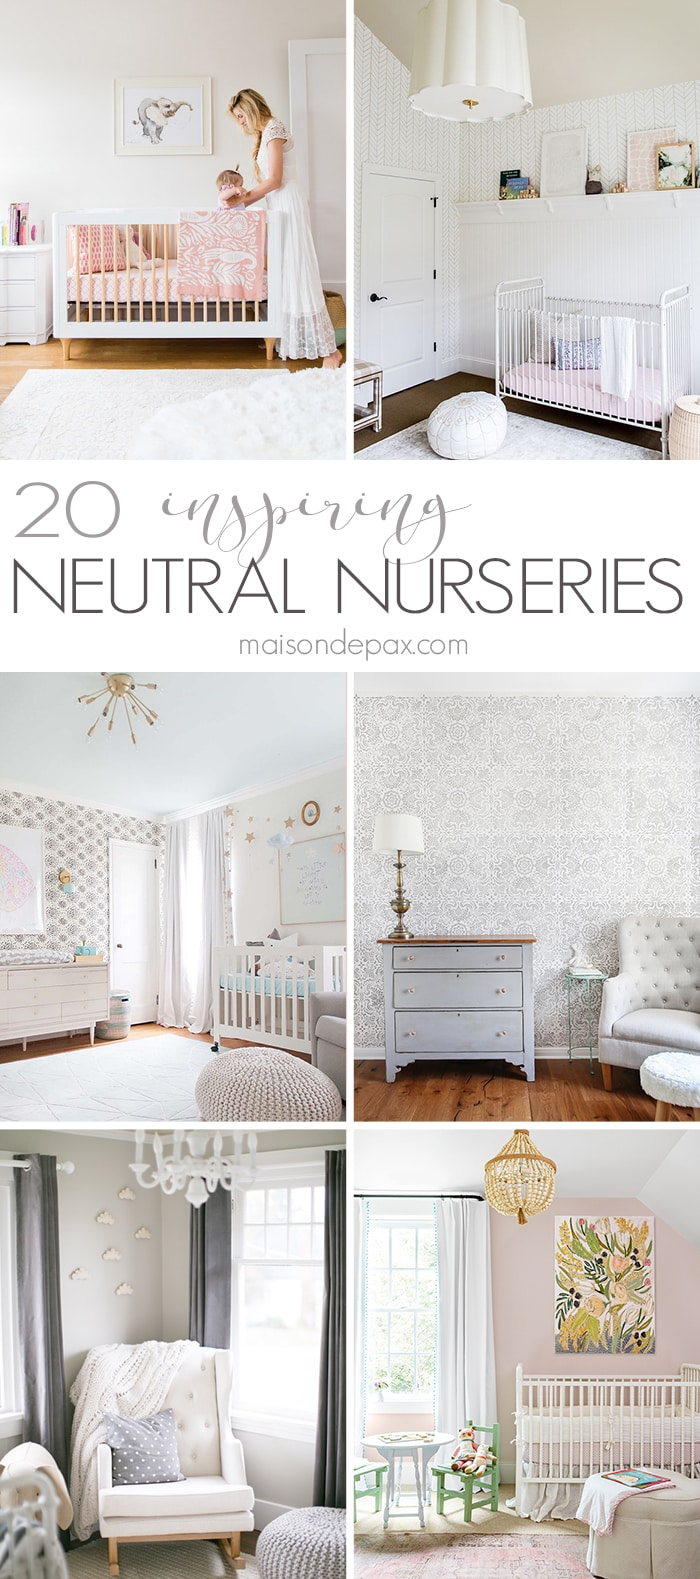 Looking for neutral nursery decorating ideas? These gorgeous nurseries leave you swooning with their subtle, soothing baby decor.